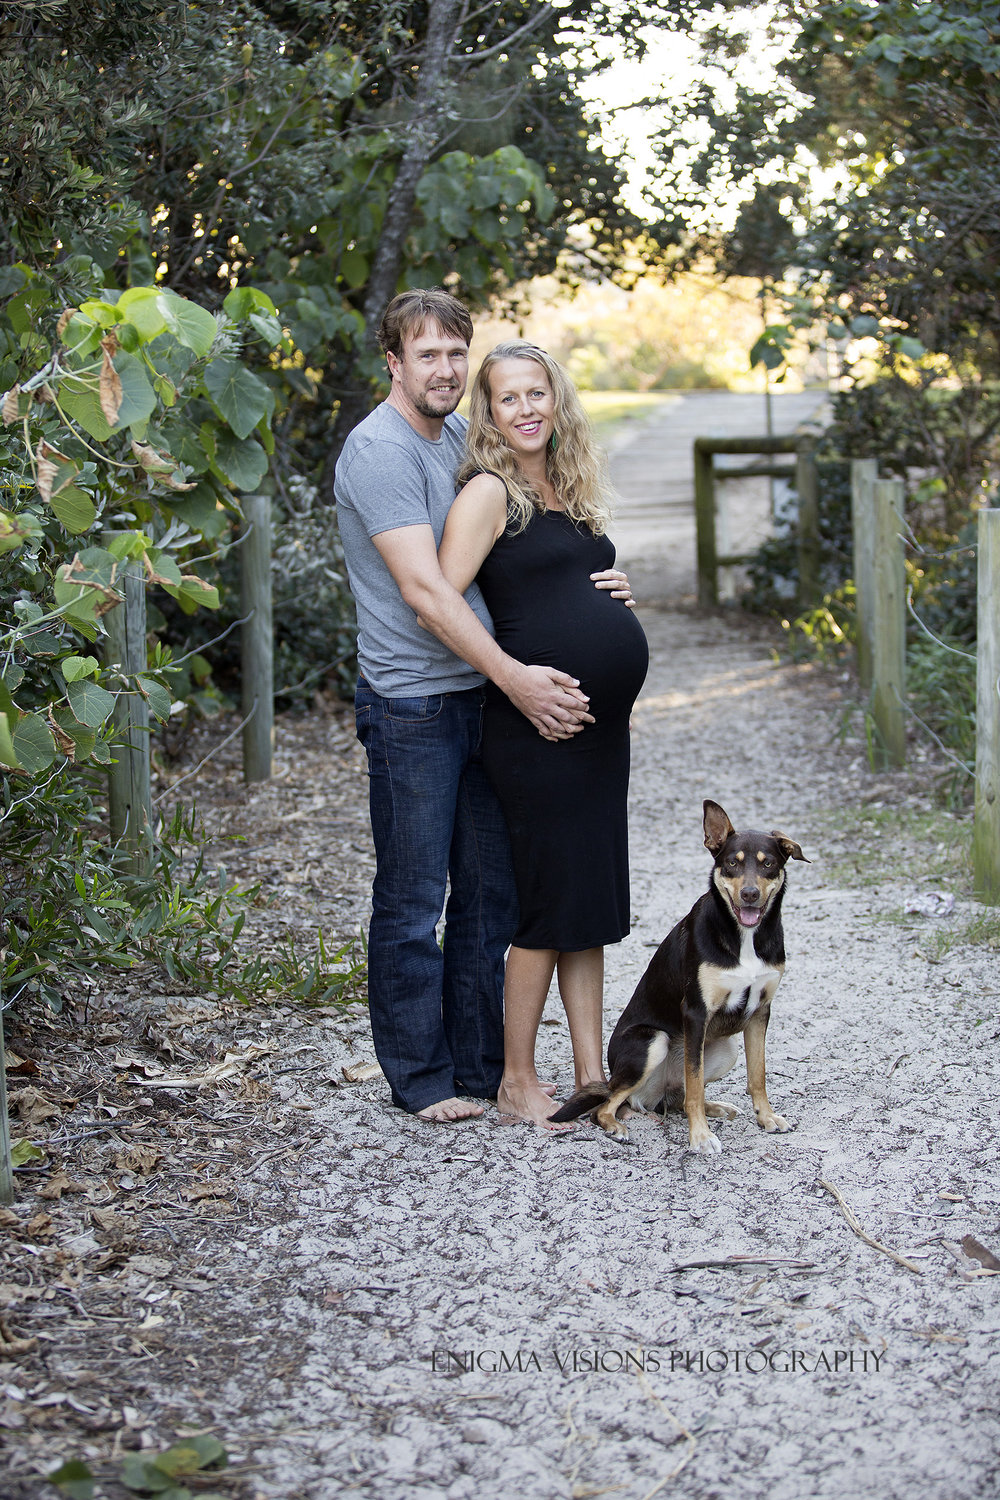 enigma_visions_photography_maternity_melandandrew_kingscliff (9).jpg